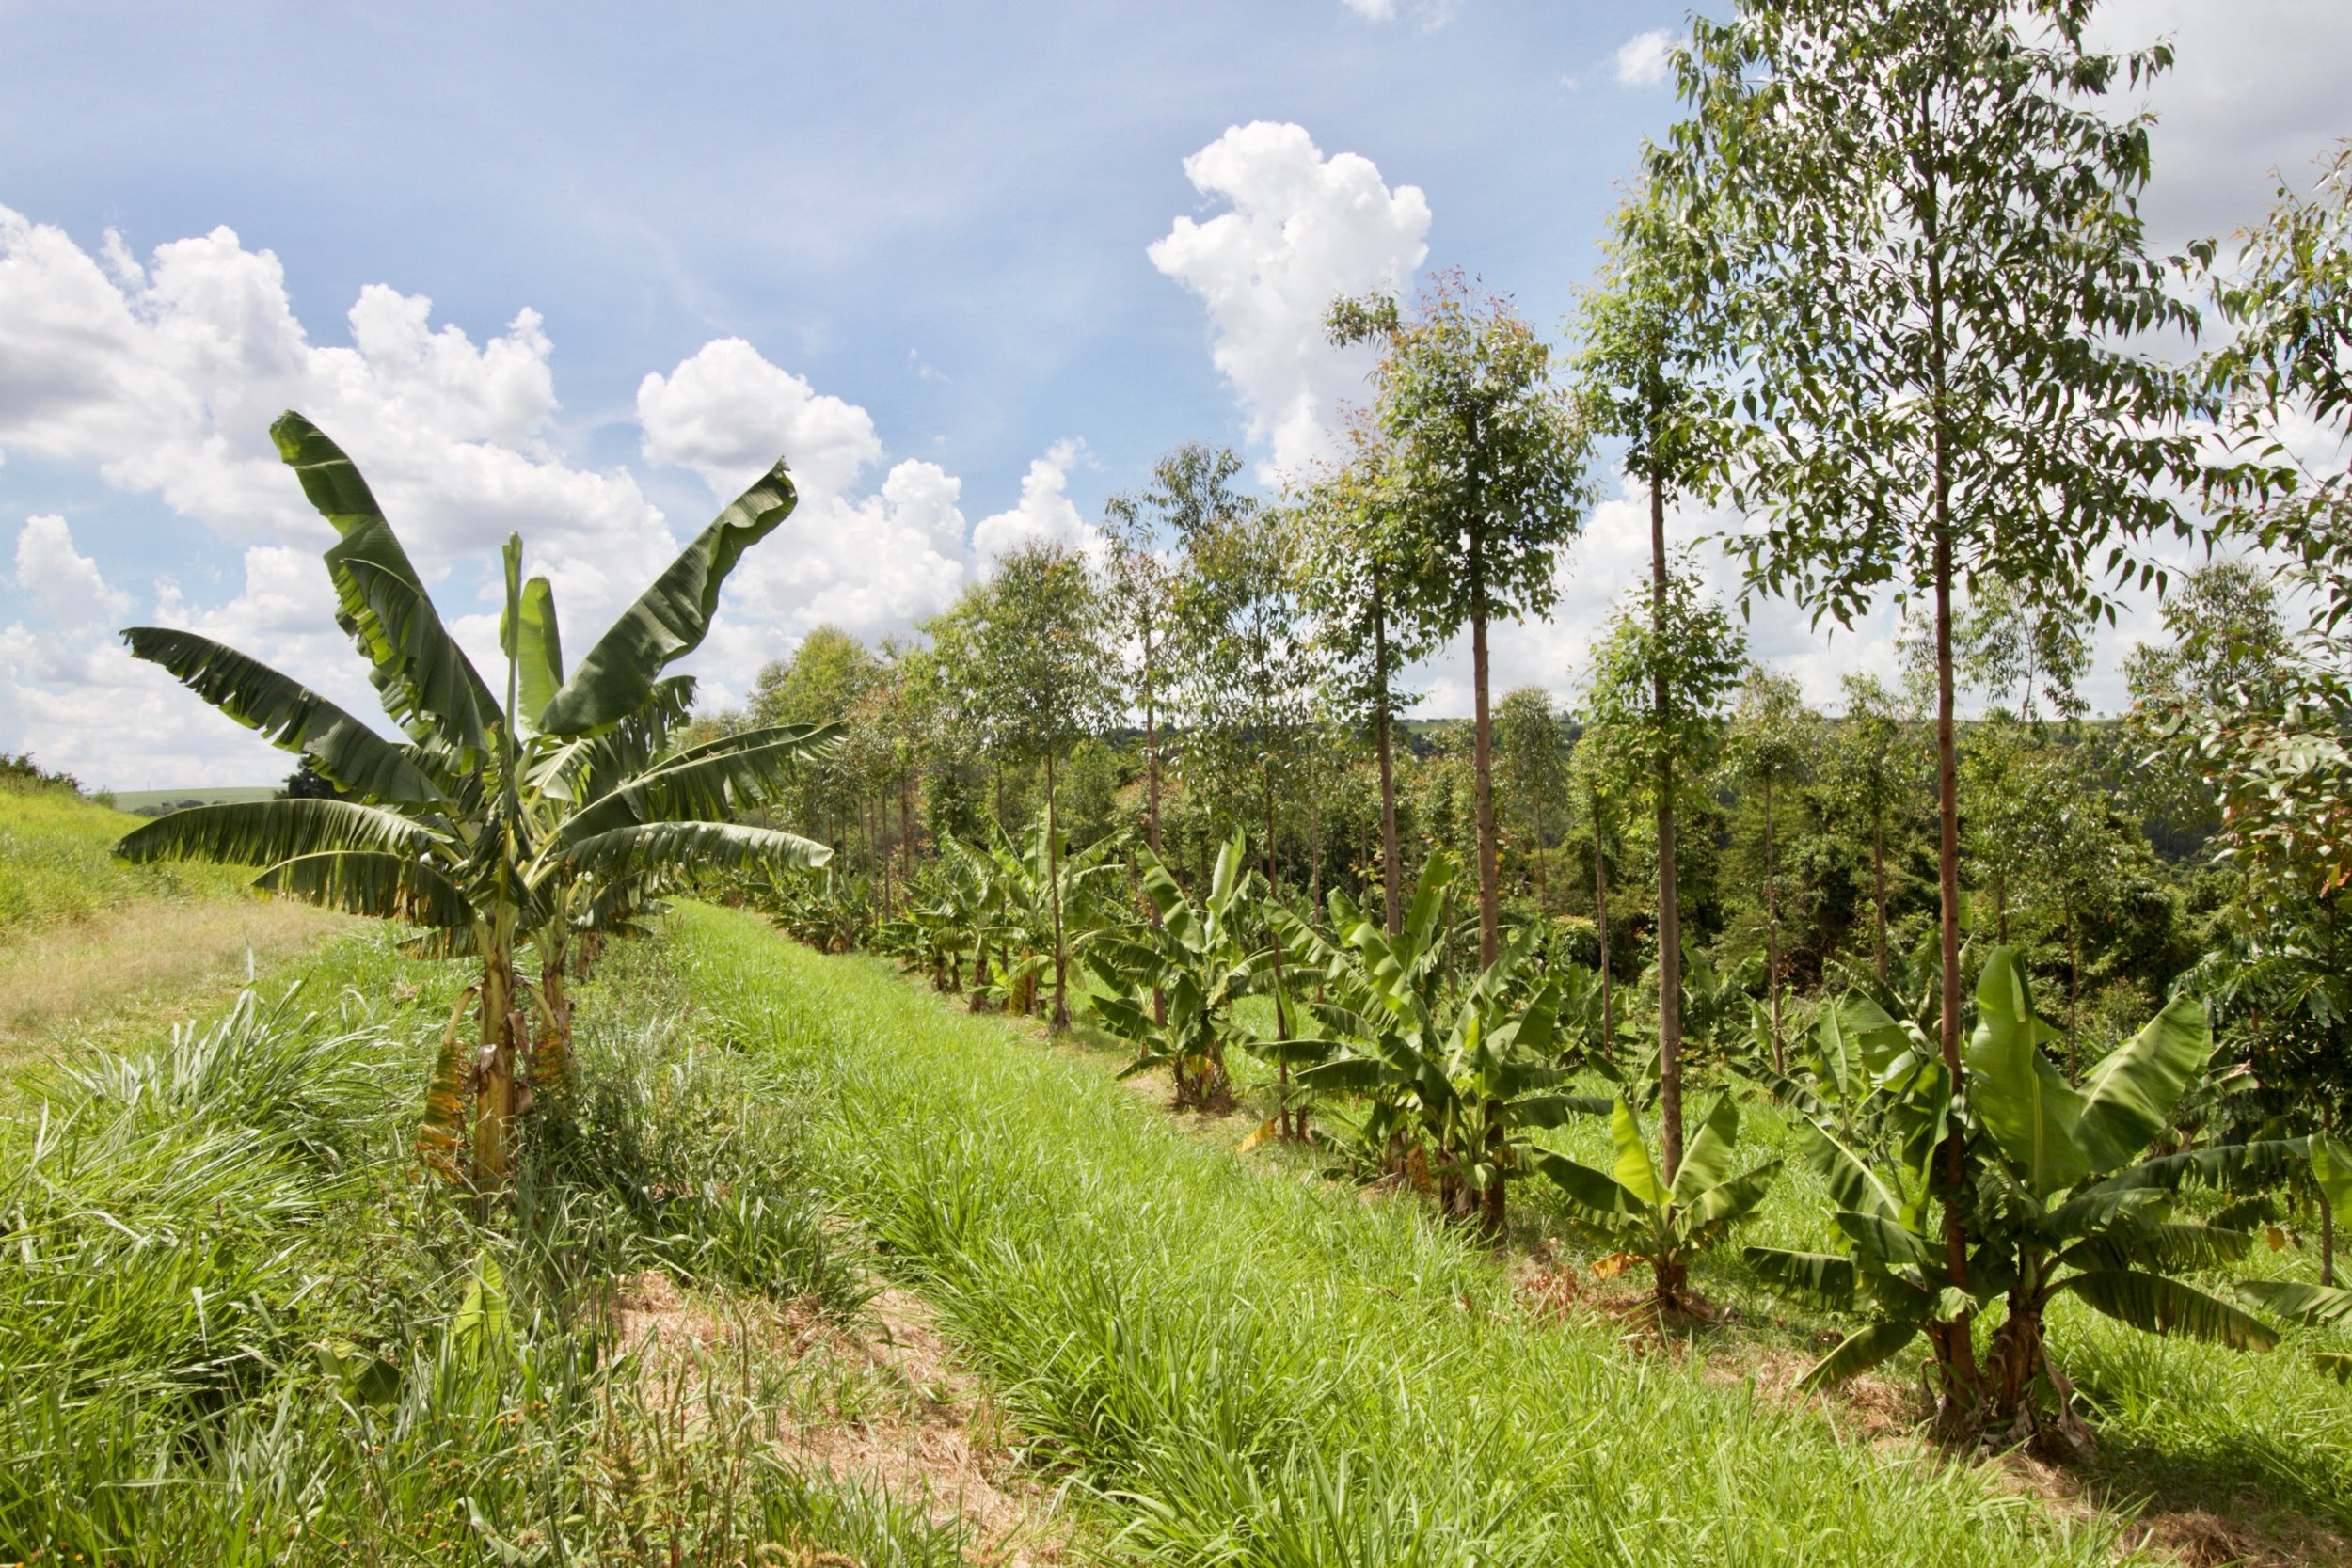 Rows of dry-farmed bananas and eucalyptus line the contours of Fazenda da Toca.